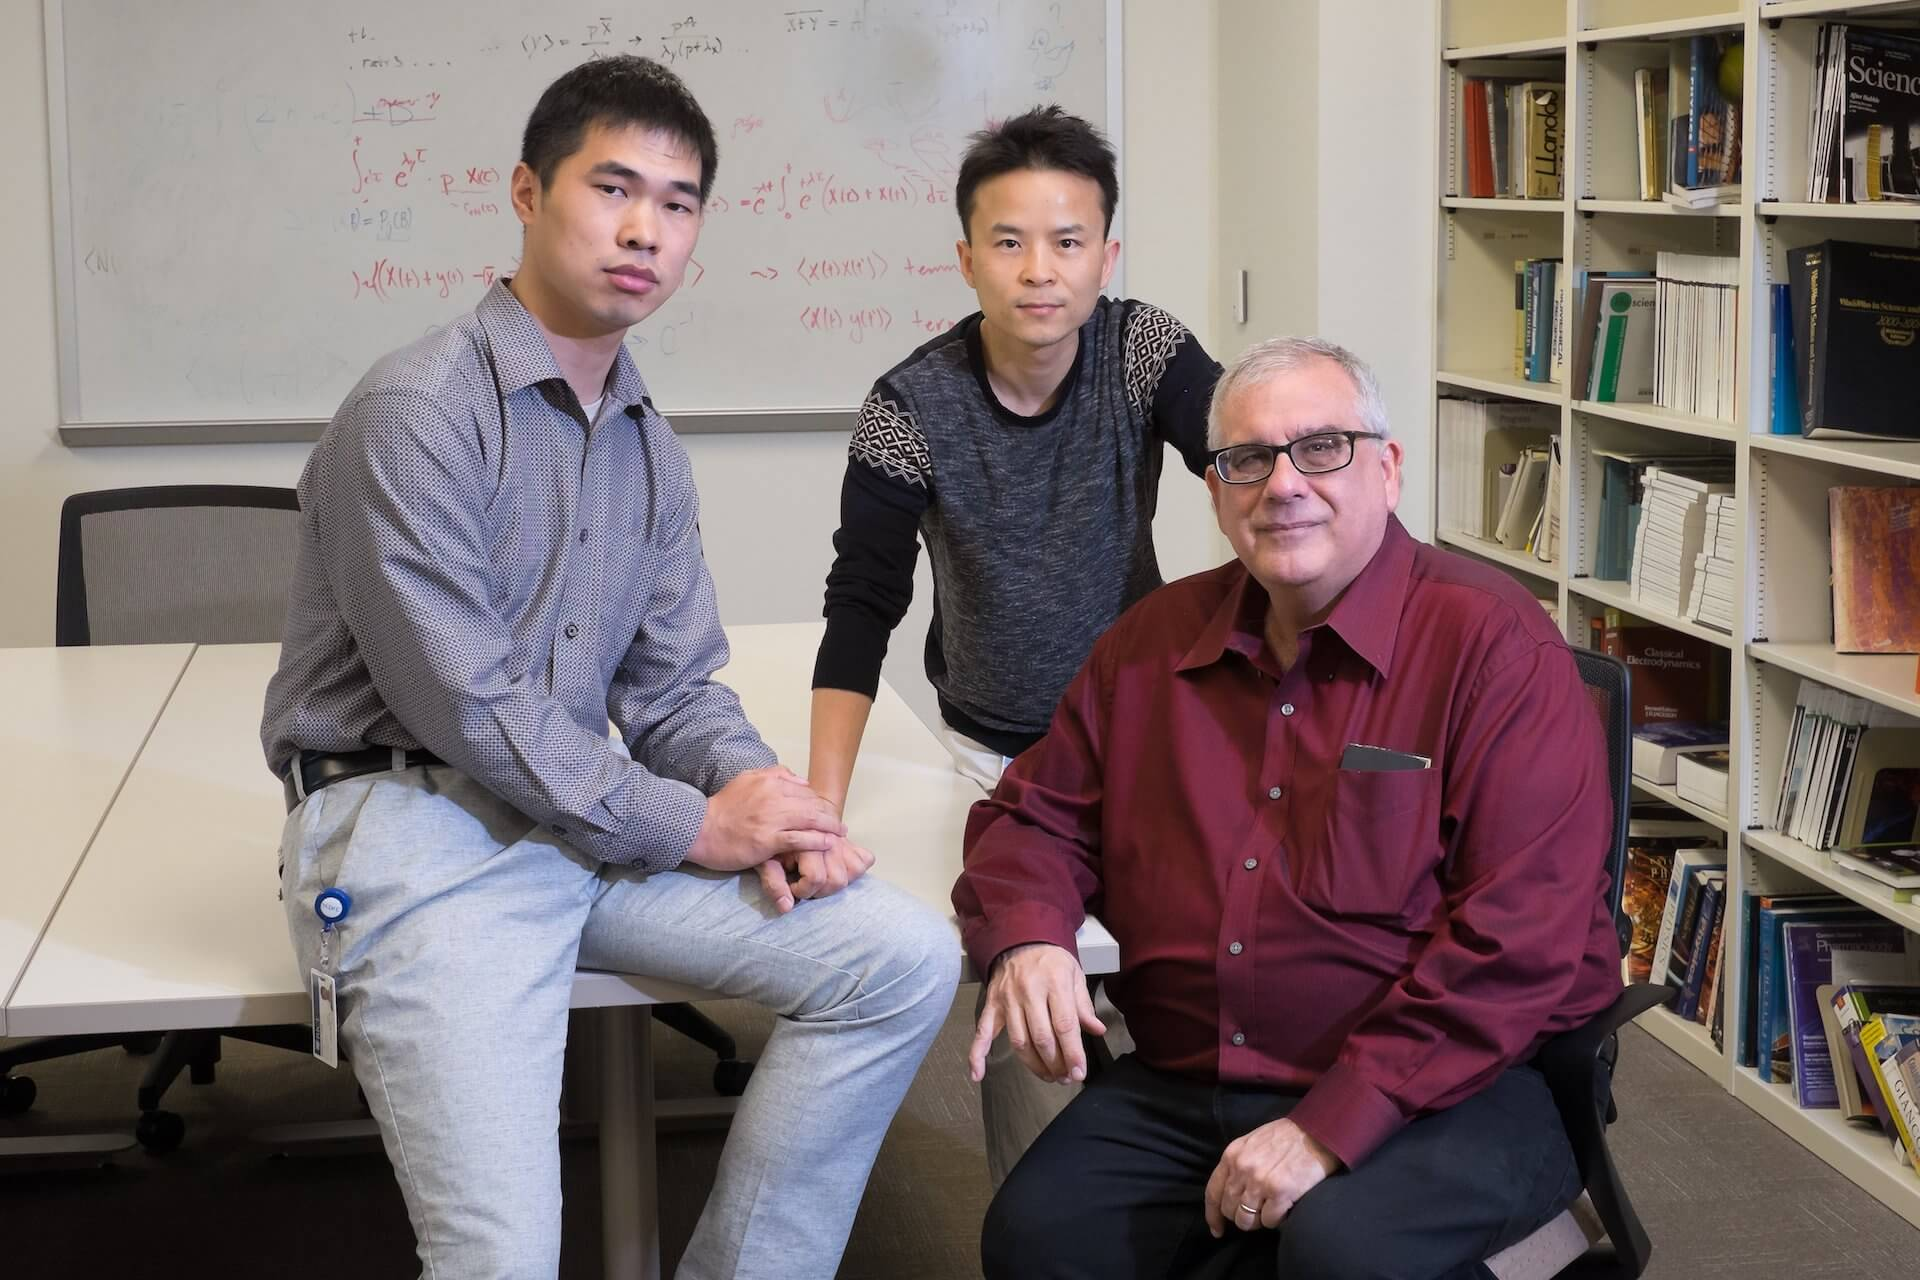 From left, Rice University graduate student Mingchen Chen, postdoctoral researcher Weihua Zheng and theoretical biological physicist Peter Wolynes co-authored a paper explaining a complex feedback loop between actin filaments and aggregating proteins in neurons that appears to be key to the formation of long-term memories.